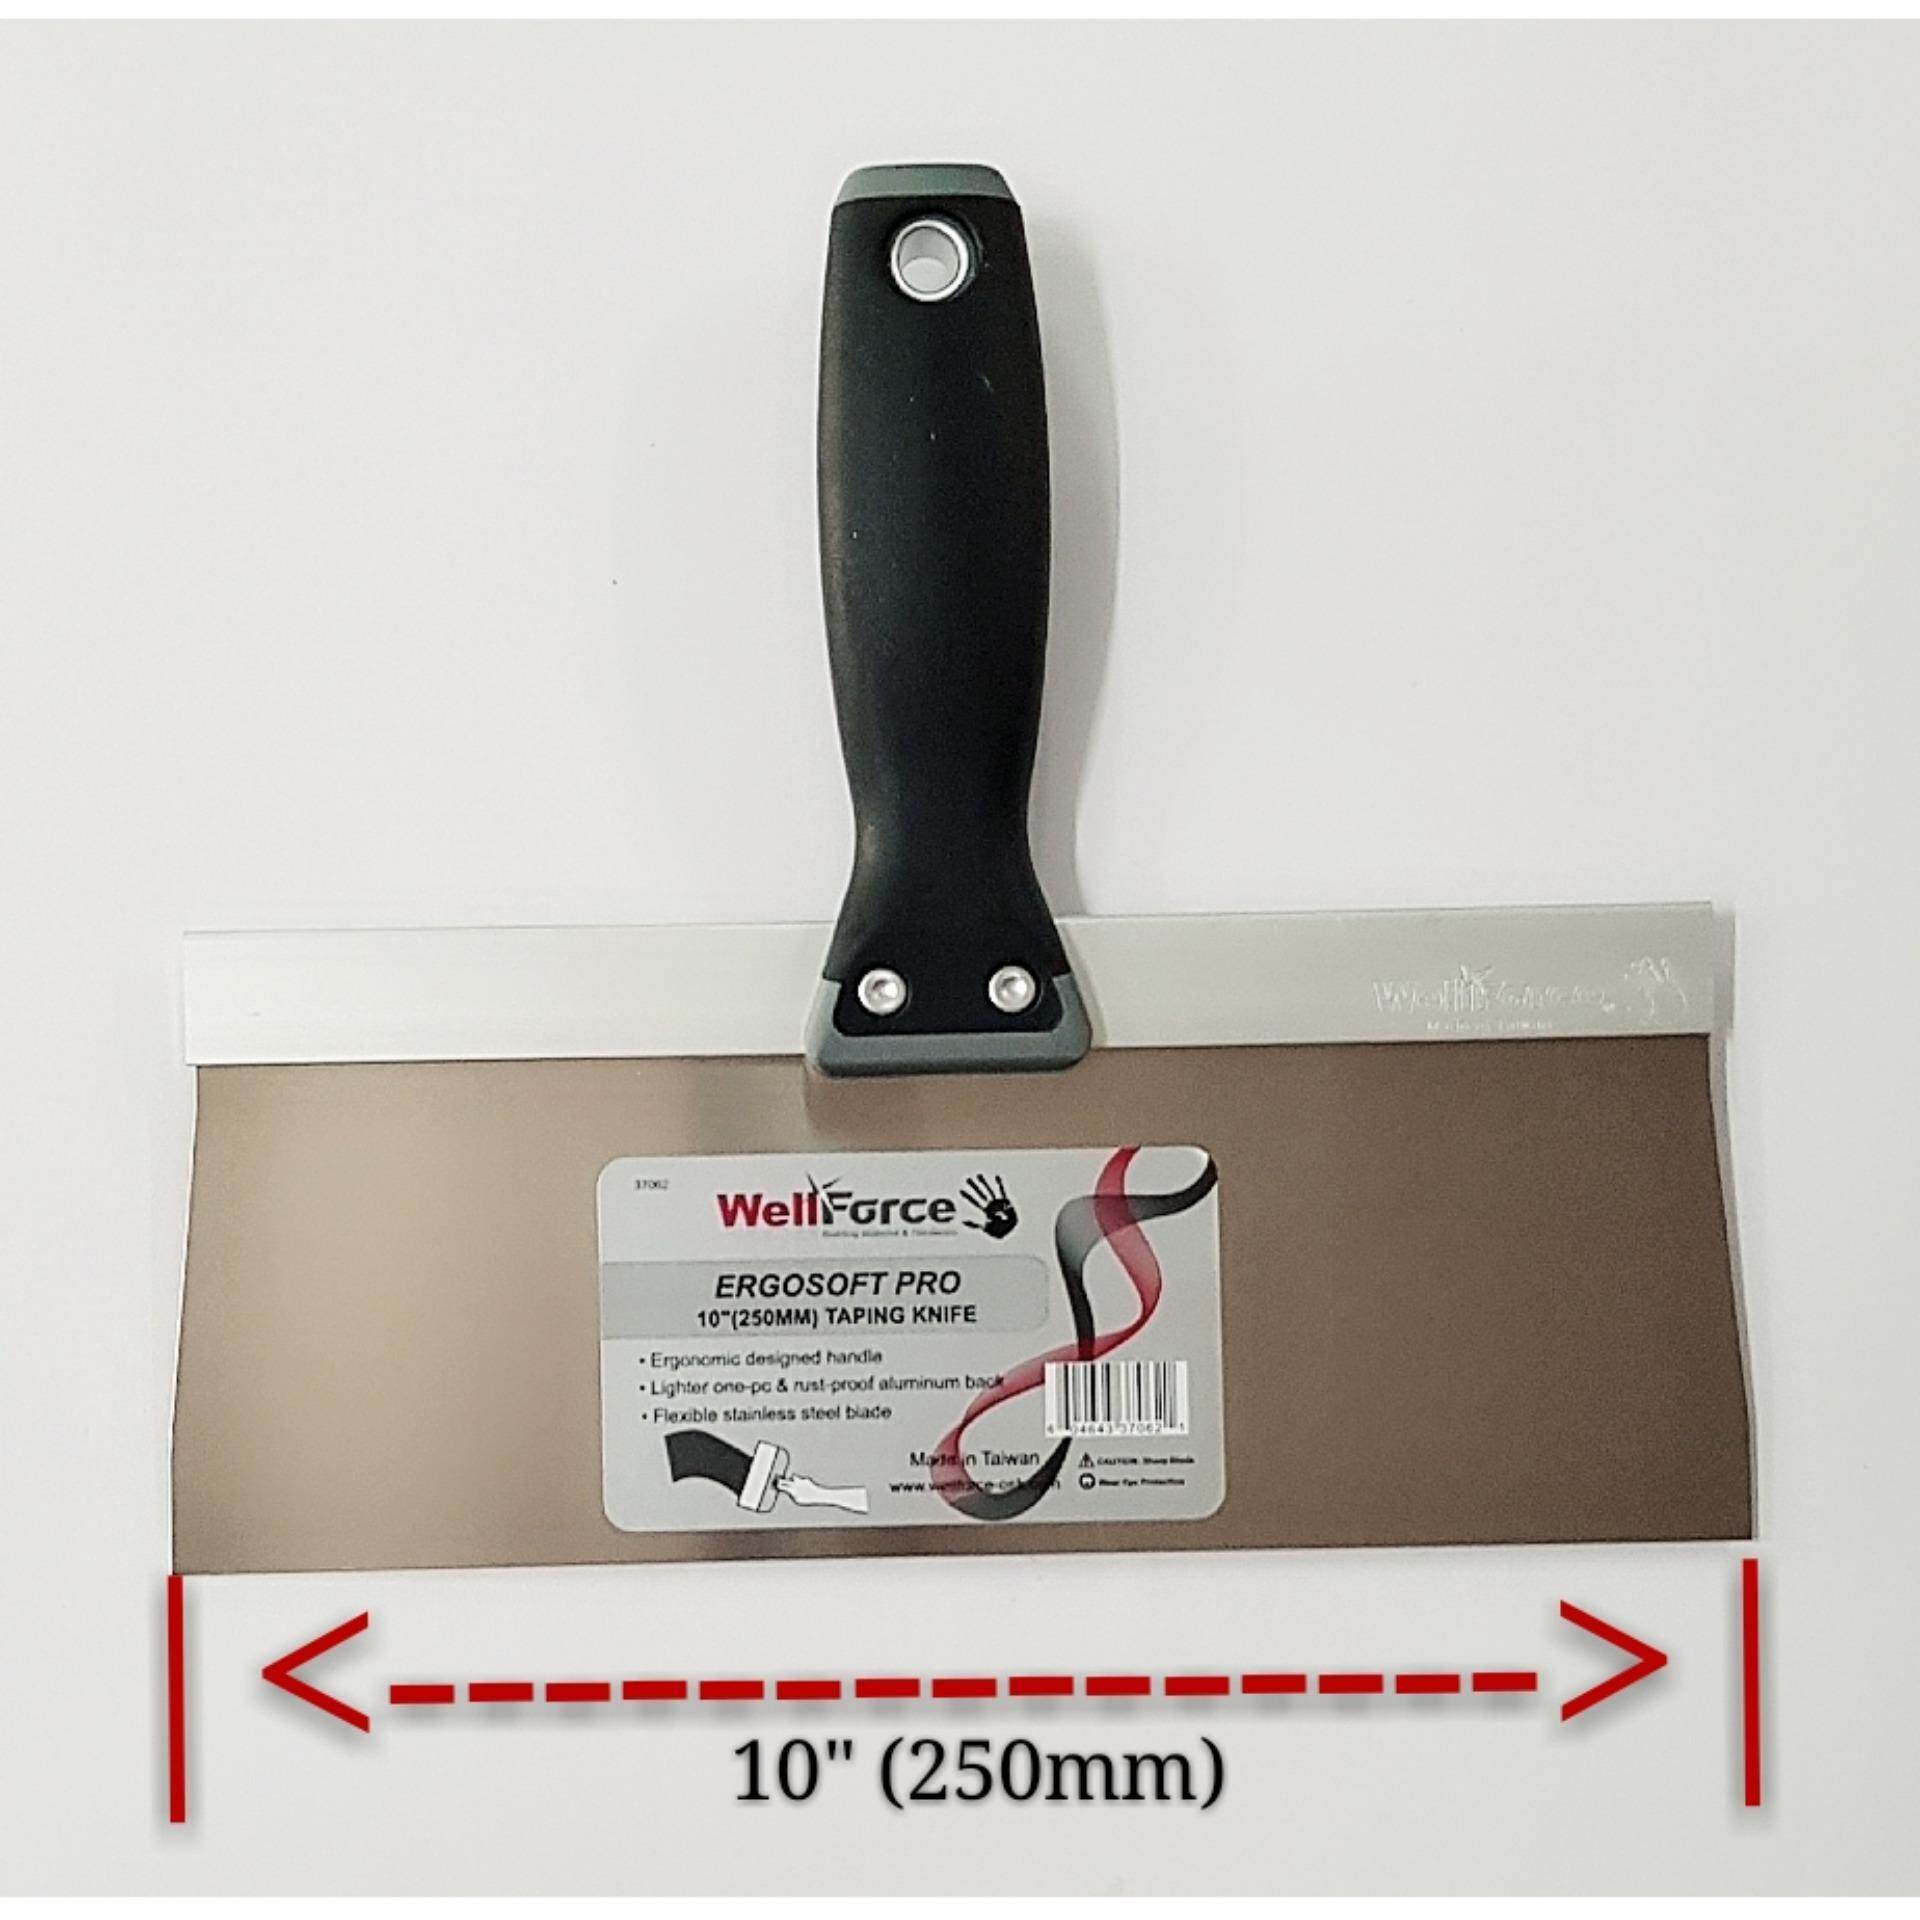 WellForce#37062 10(250Mm) Ergosoft Taping Knife (S/STEEL)